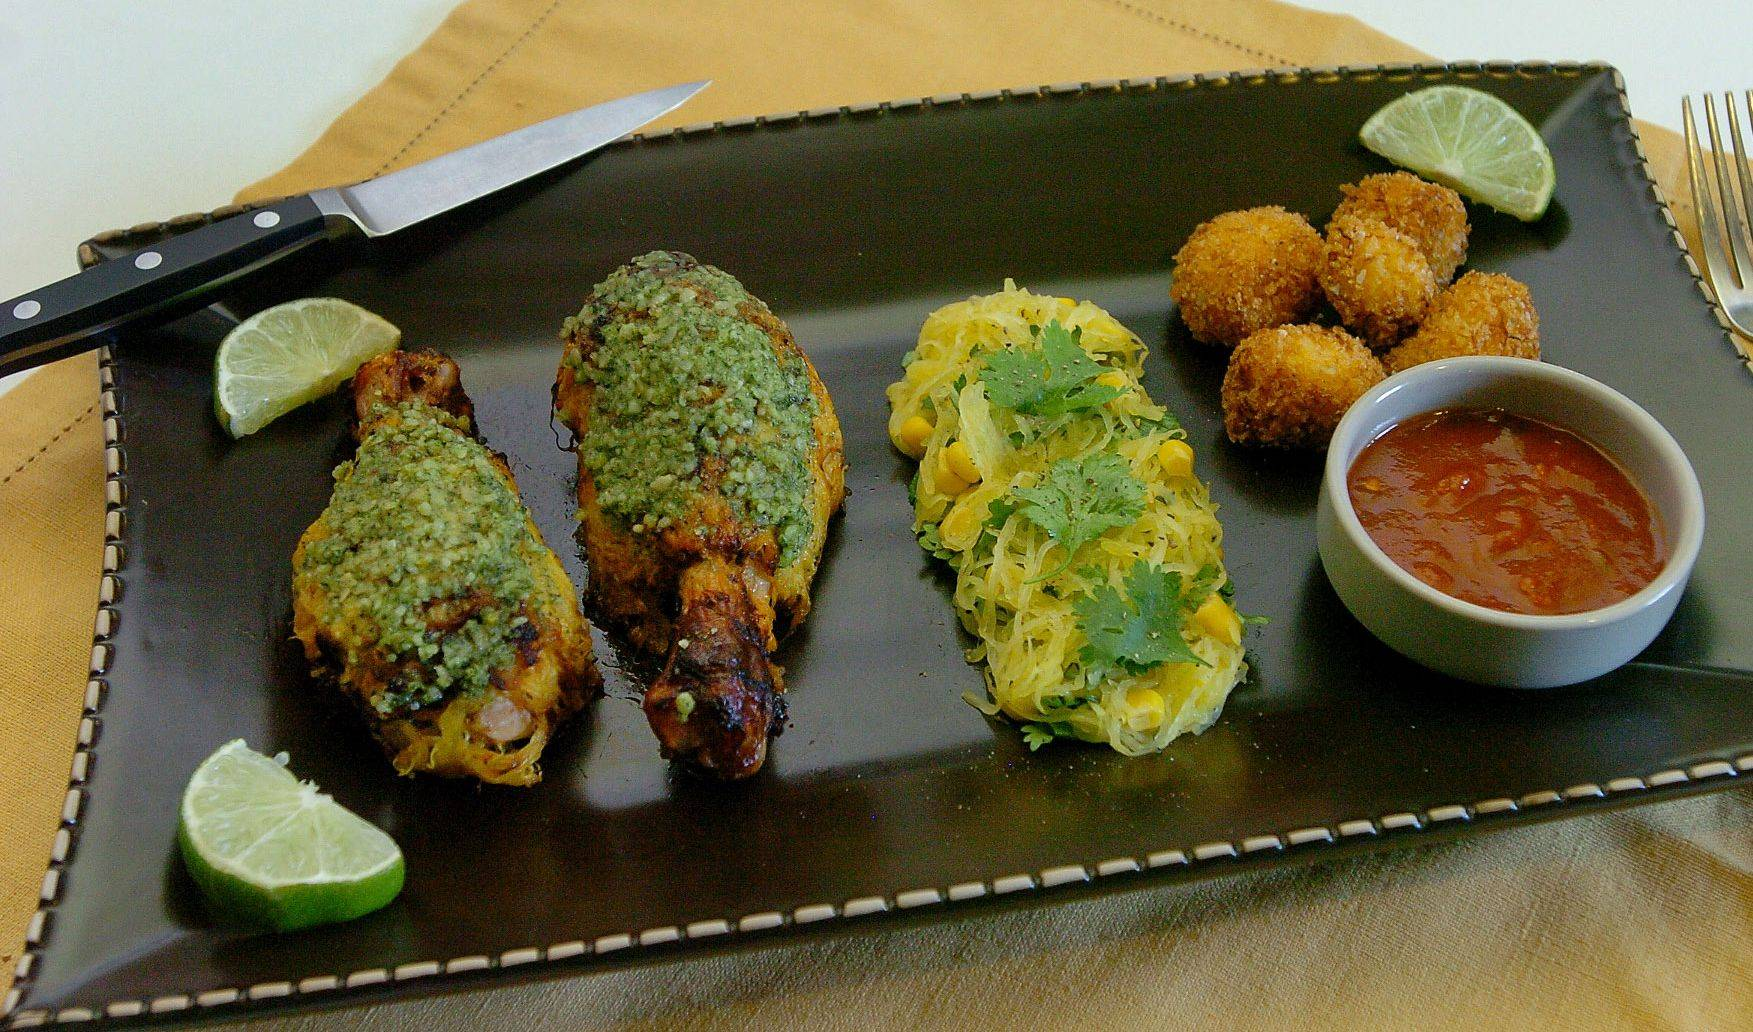 Chuck Federici's Nested Salsa Chicken Legs with Cilantro Pesto and Spaghetti Squash Tots